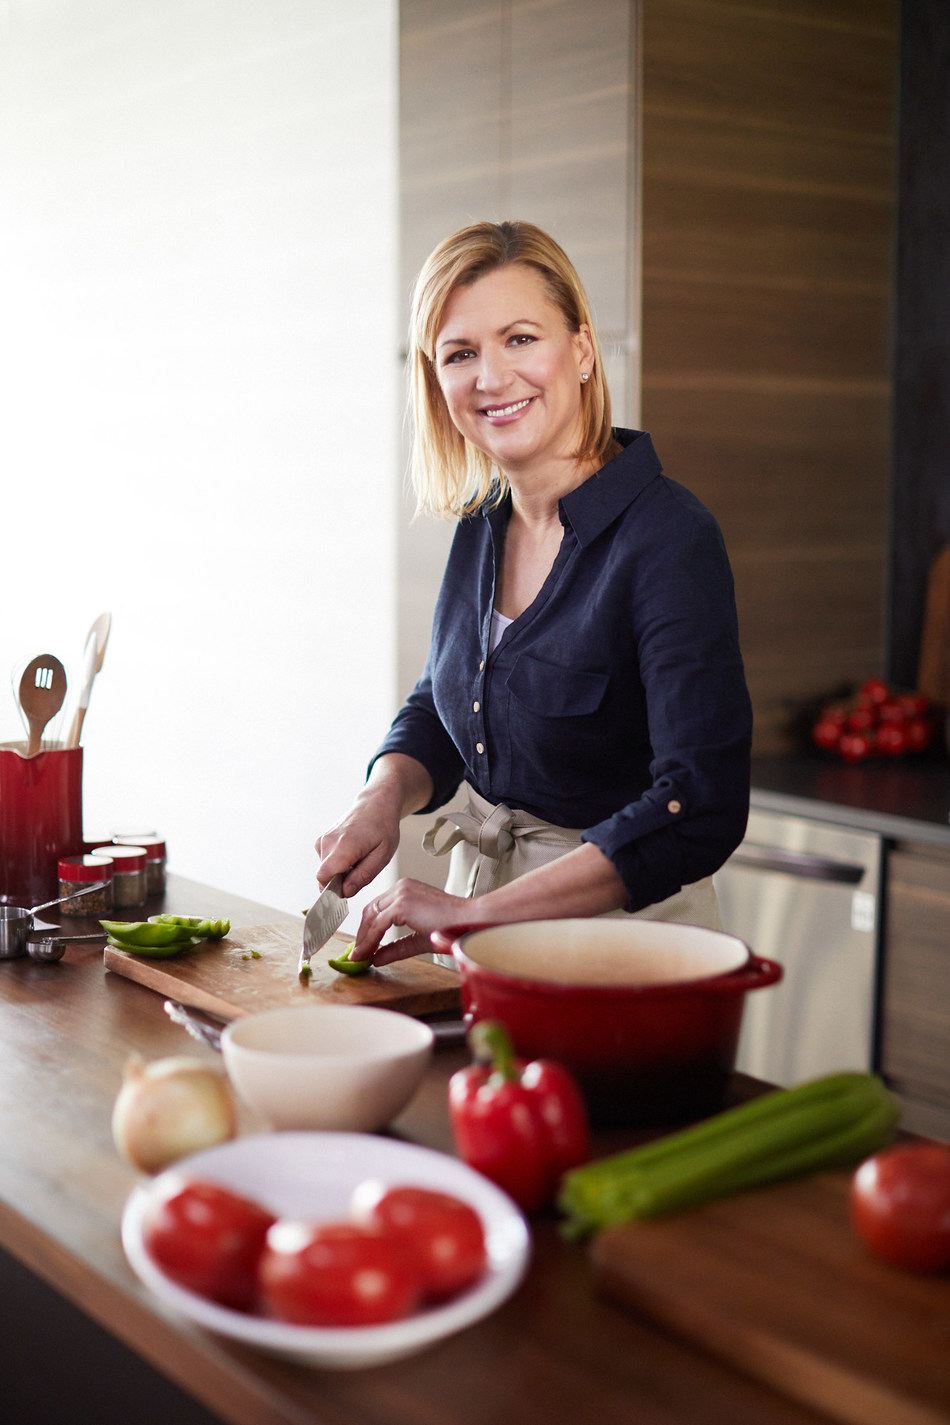 To champion the importance of Canadians cooking at home together, Chef Anna Olson partners with LG Electronics Canada to help families create and relive meaningful memories together through food. (CNW Group/LG Electronics Canada)